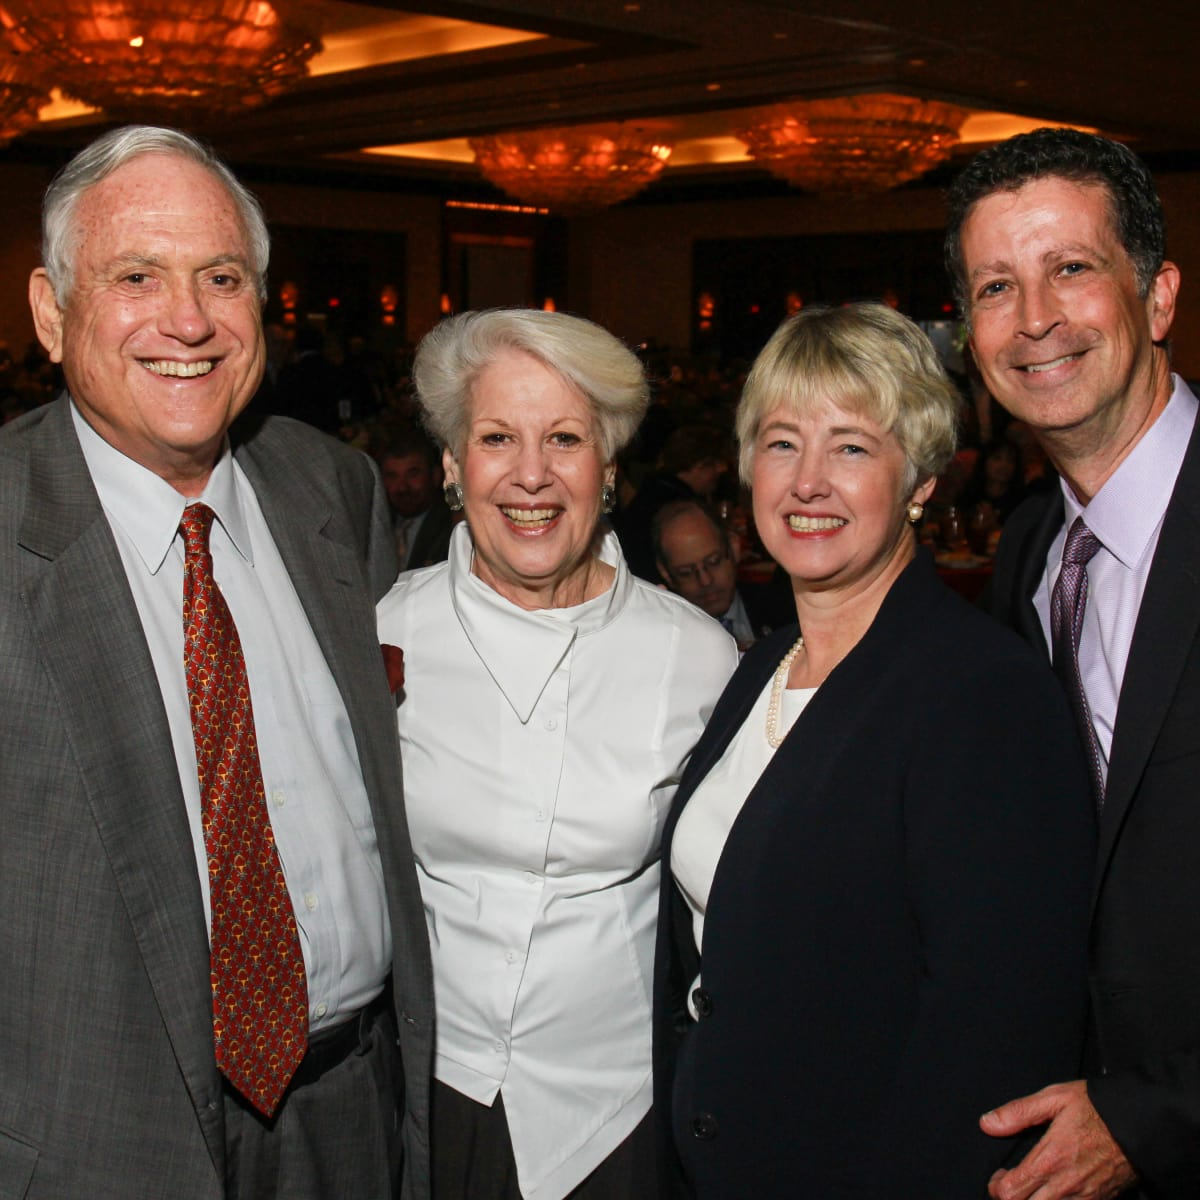 News, Shelby, Holocaust museum luncheon, Nov. 2015, Arthur Schechter, Lorraine Wulfe,Mayor Annise Parker, Barry Mandel.